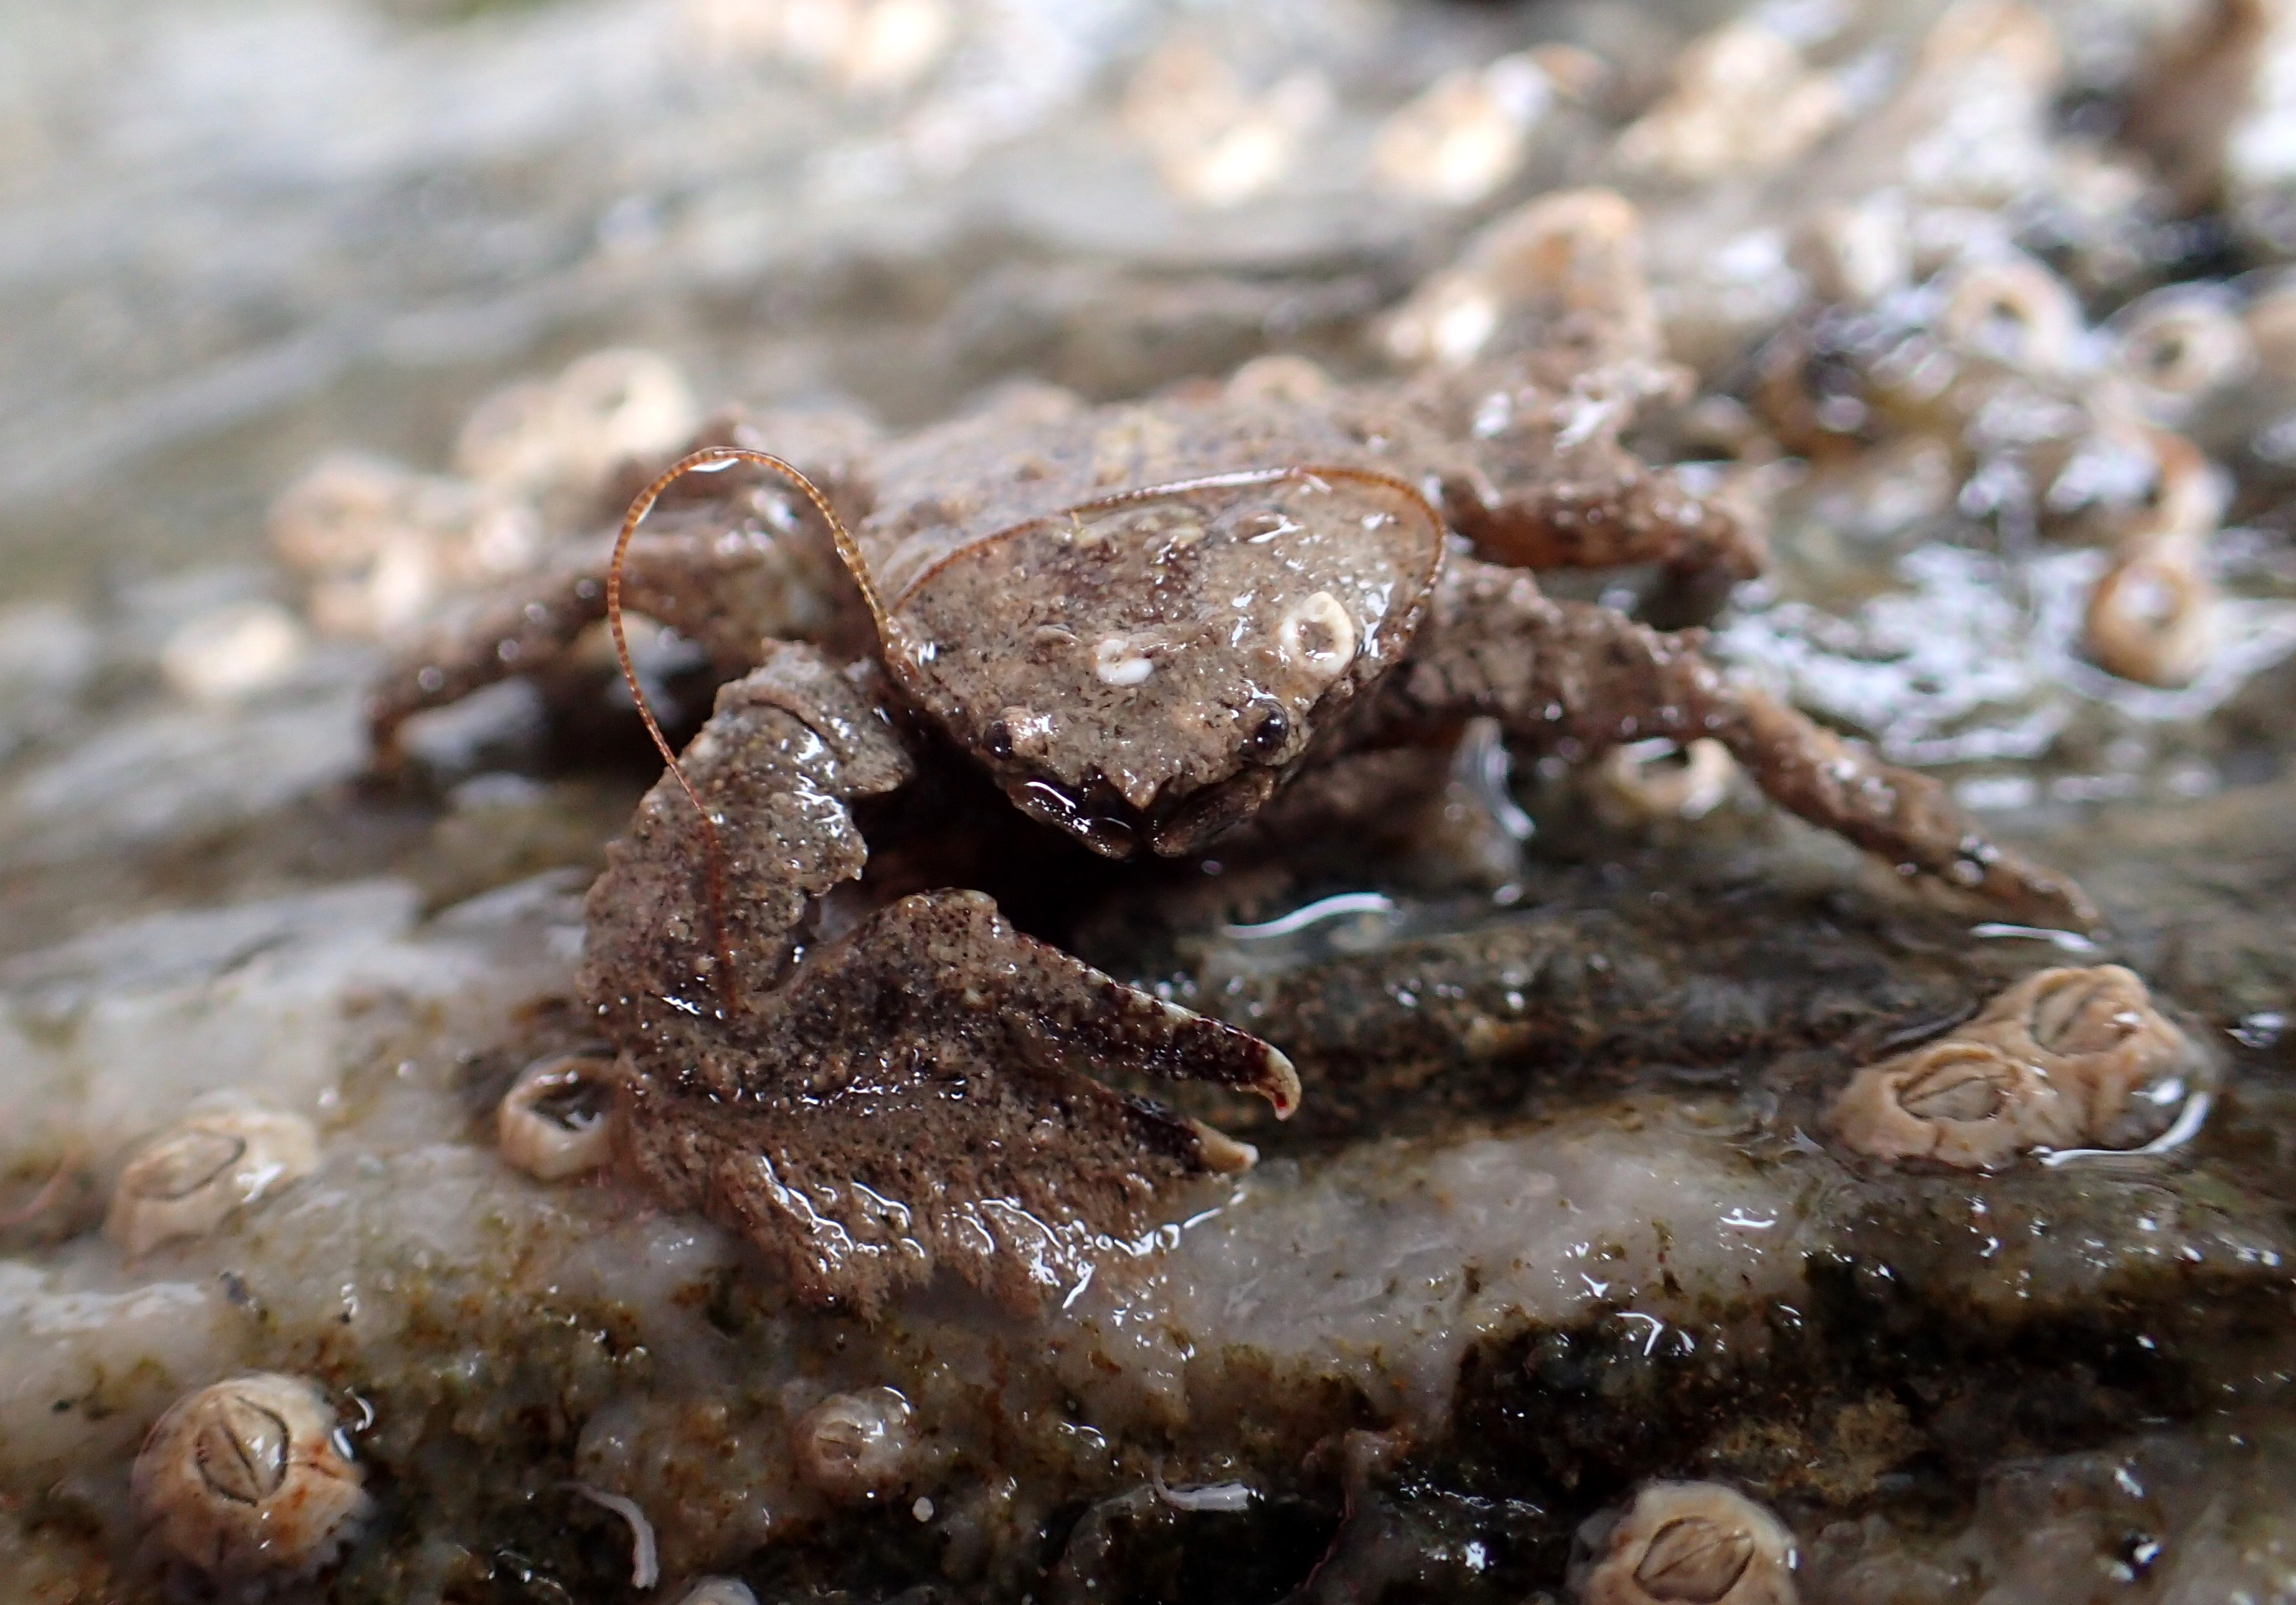 Pleased to meet you! A broad-clawed porcelain crab extends a claw. Cornish Rock Pools